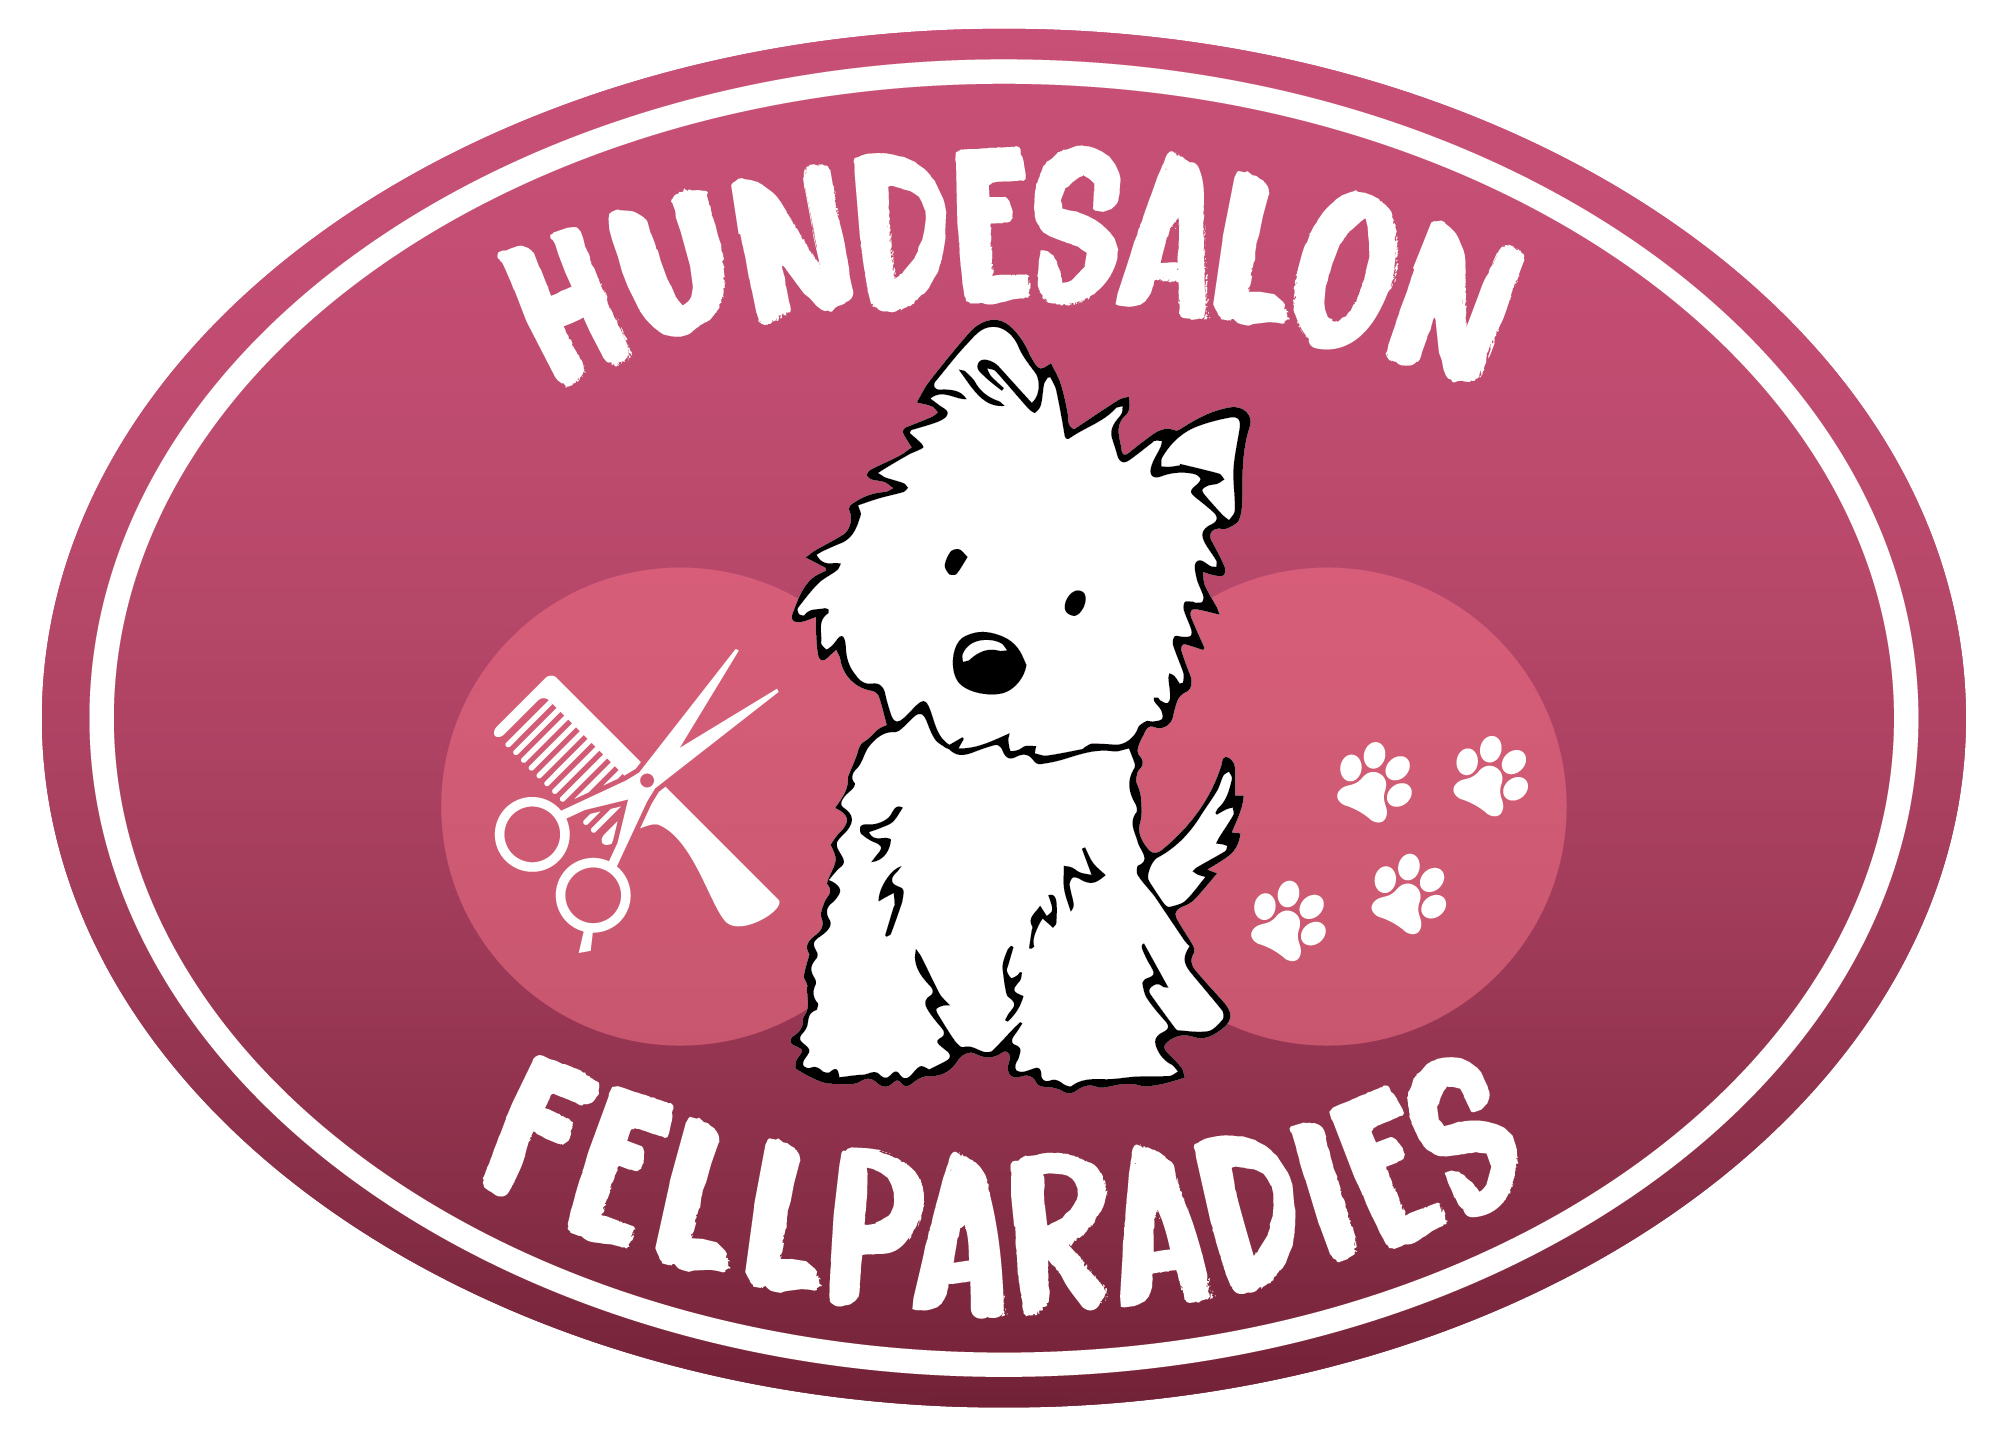 Hundesalon Fellparadies